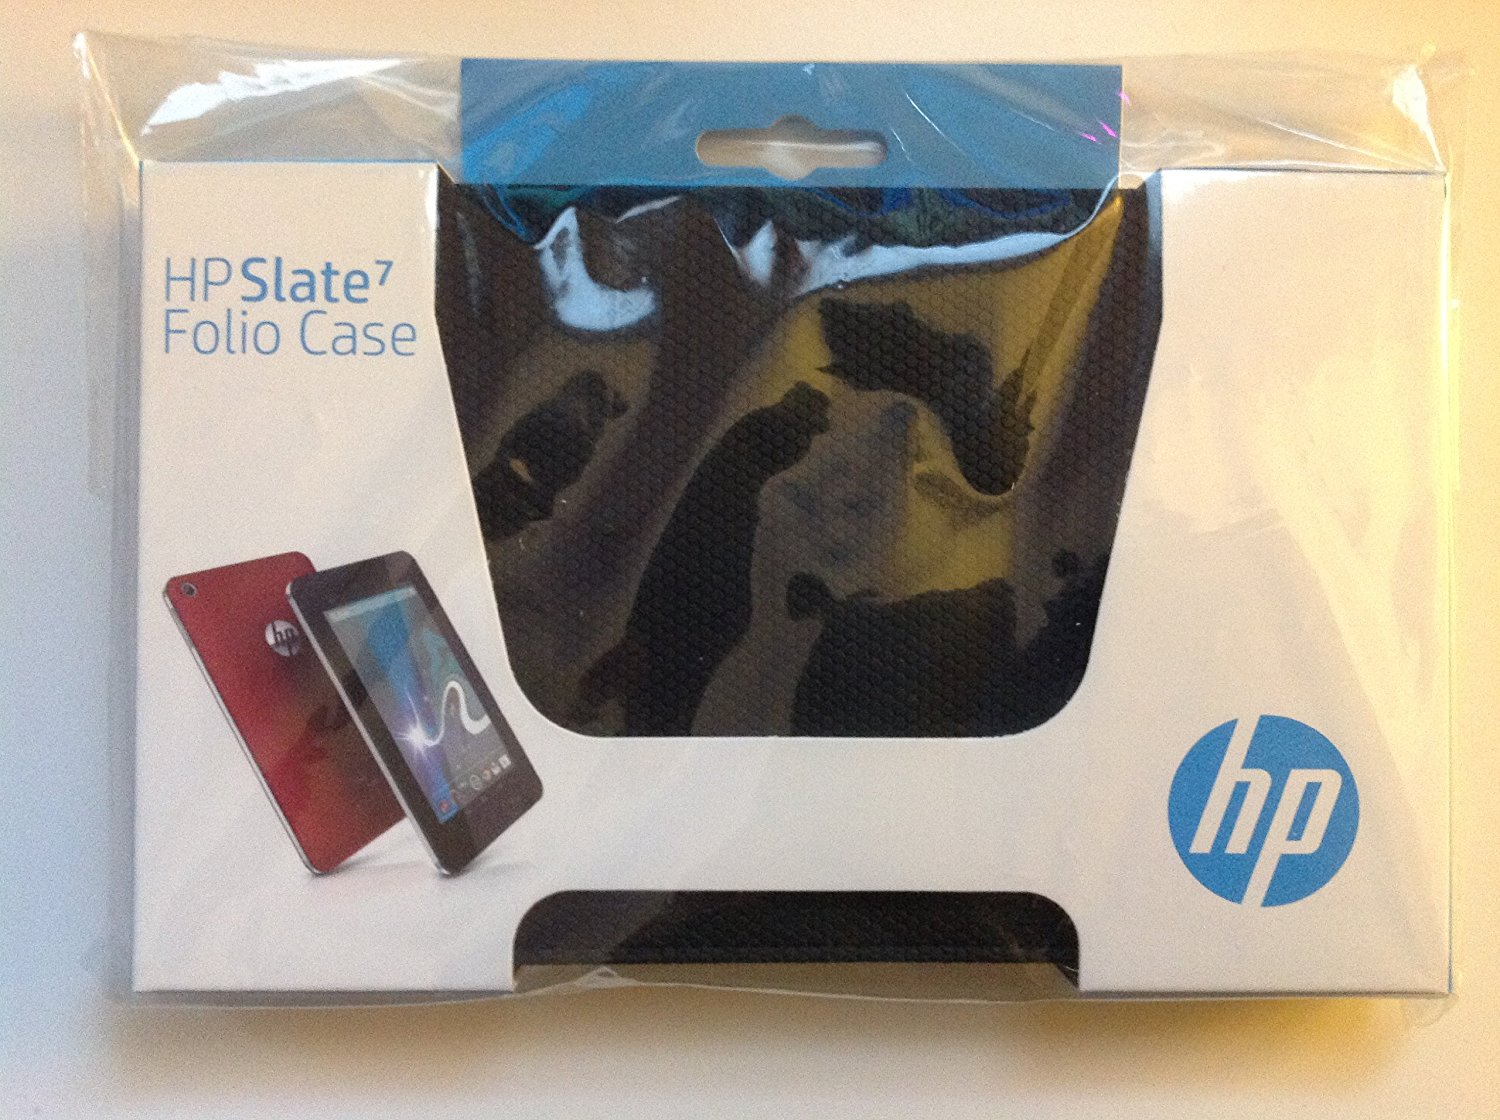 """Original HP Slate 7 Folio Black Case For HP Slate 7 Folio 7"""" Tablet Model Numbers: HP Slate 7 1800 7-Inch Tablet (white), E9S46AA#ABA, HP Slate 7 2800 7-Inch Tablet (Old Version), E0H92AA#ABA, HP Slate 7 2800 7-Inch Tablet, E4W57AT#ABA, 100% Compatible With HP Part Numbers: E2X68AA, 736704-001,"""